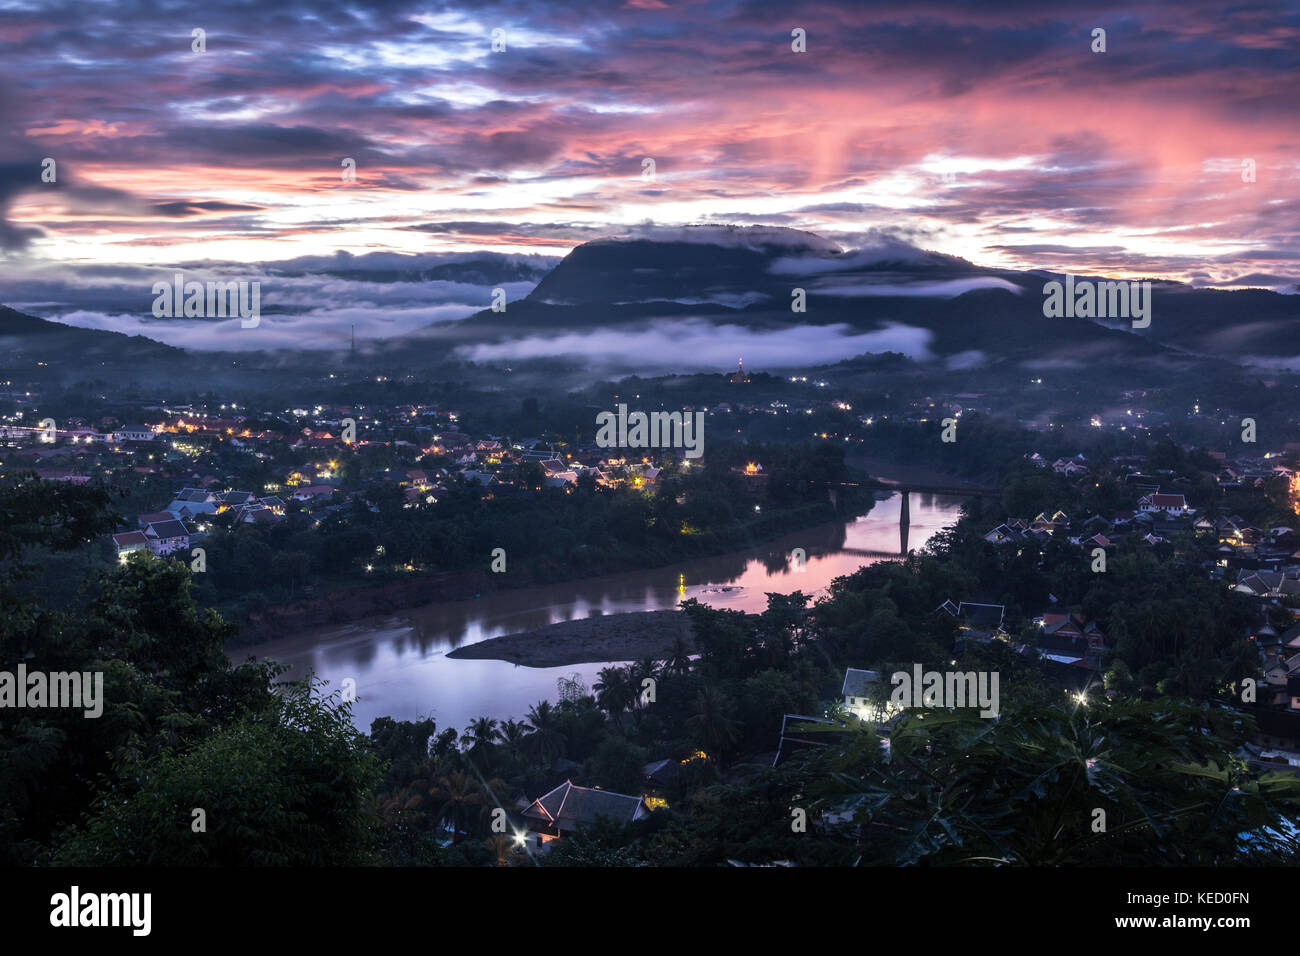 Sun beginning to rise over Luang Prabang, Northern Laos. - Stock Image